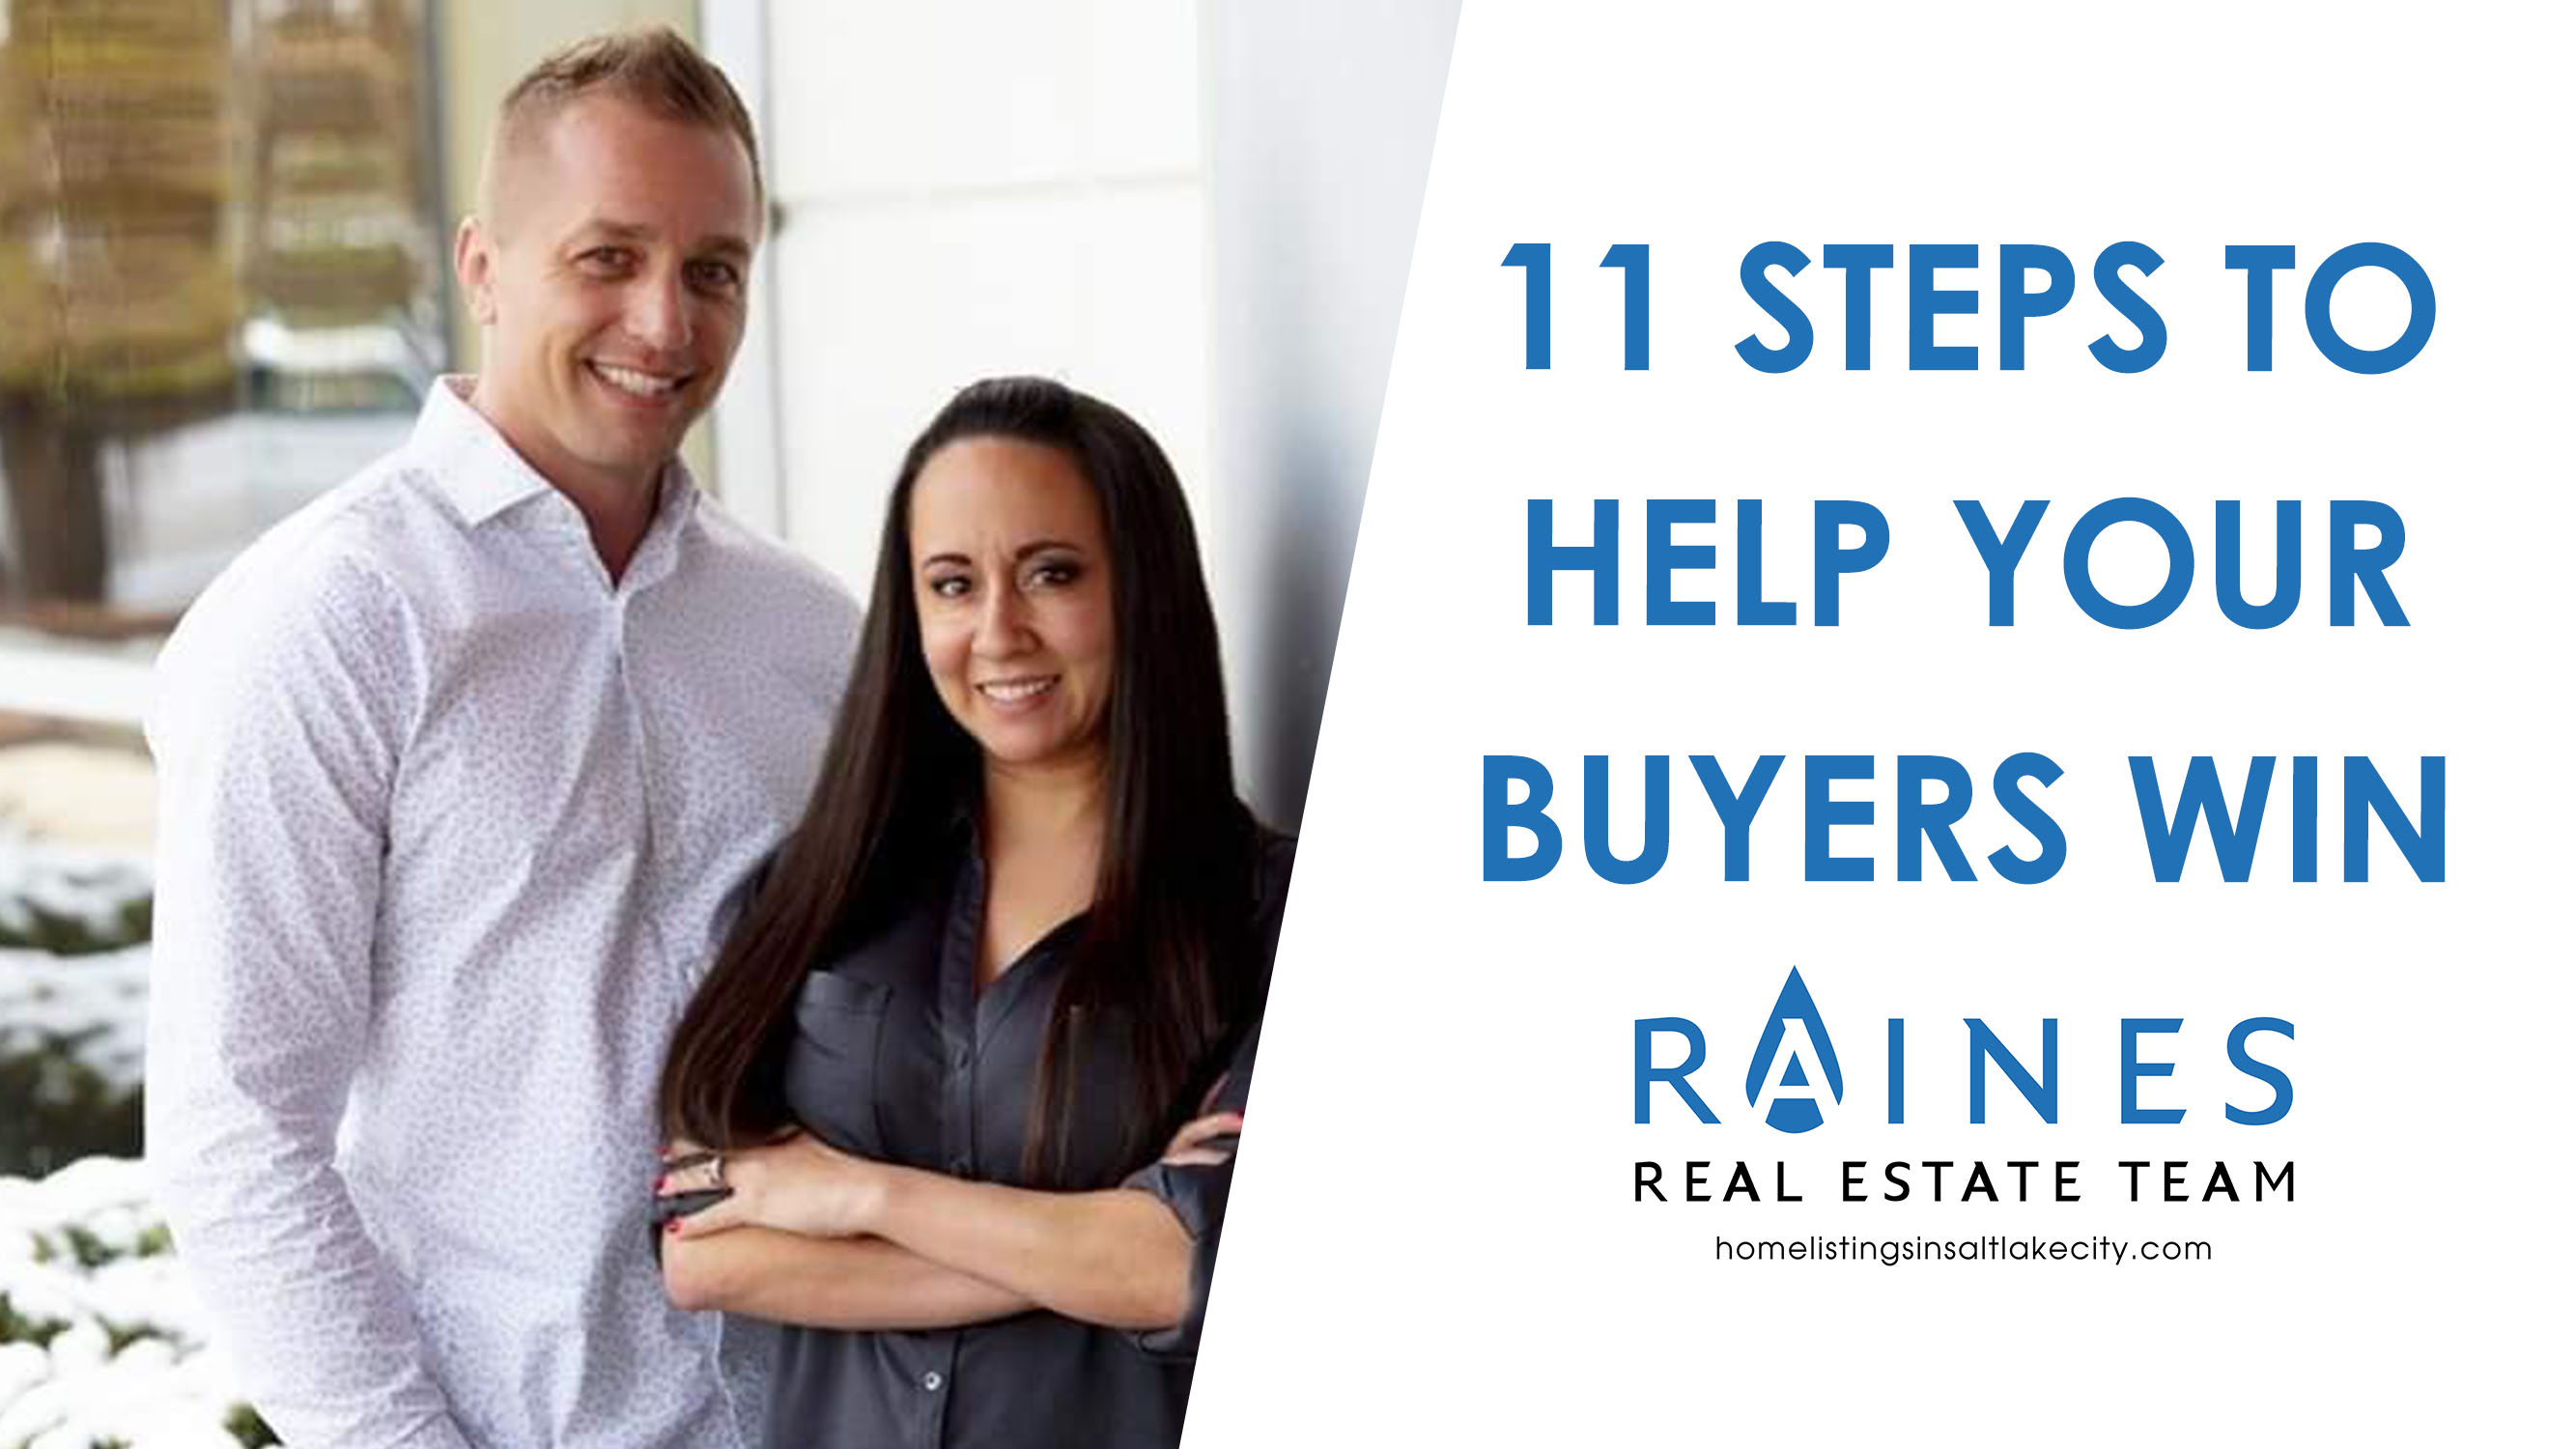 11 Steps We Can Take to Help Buyers Win